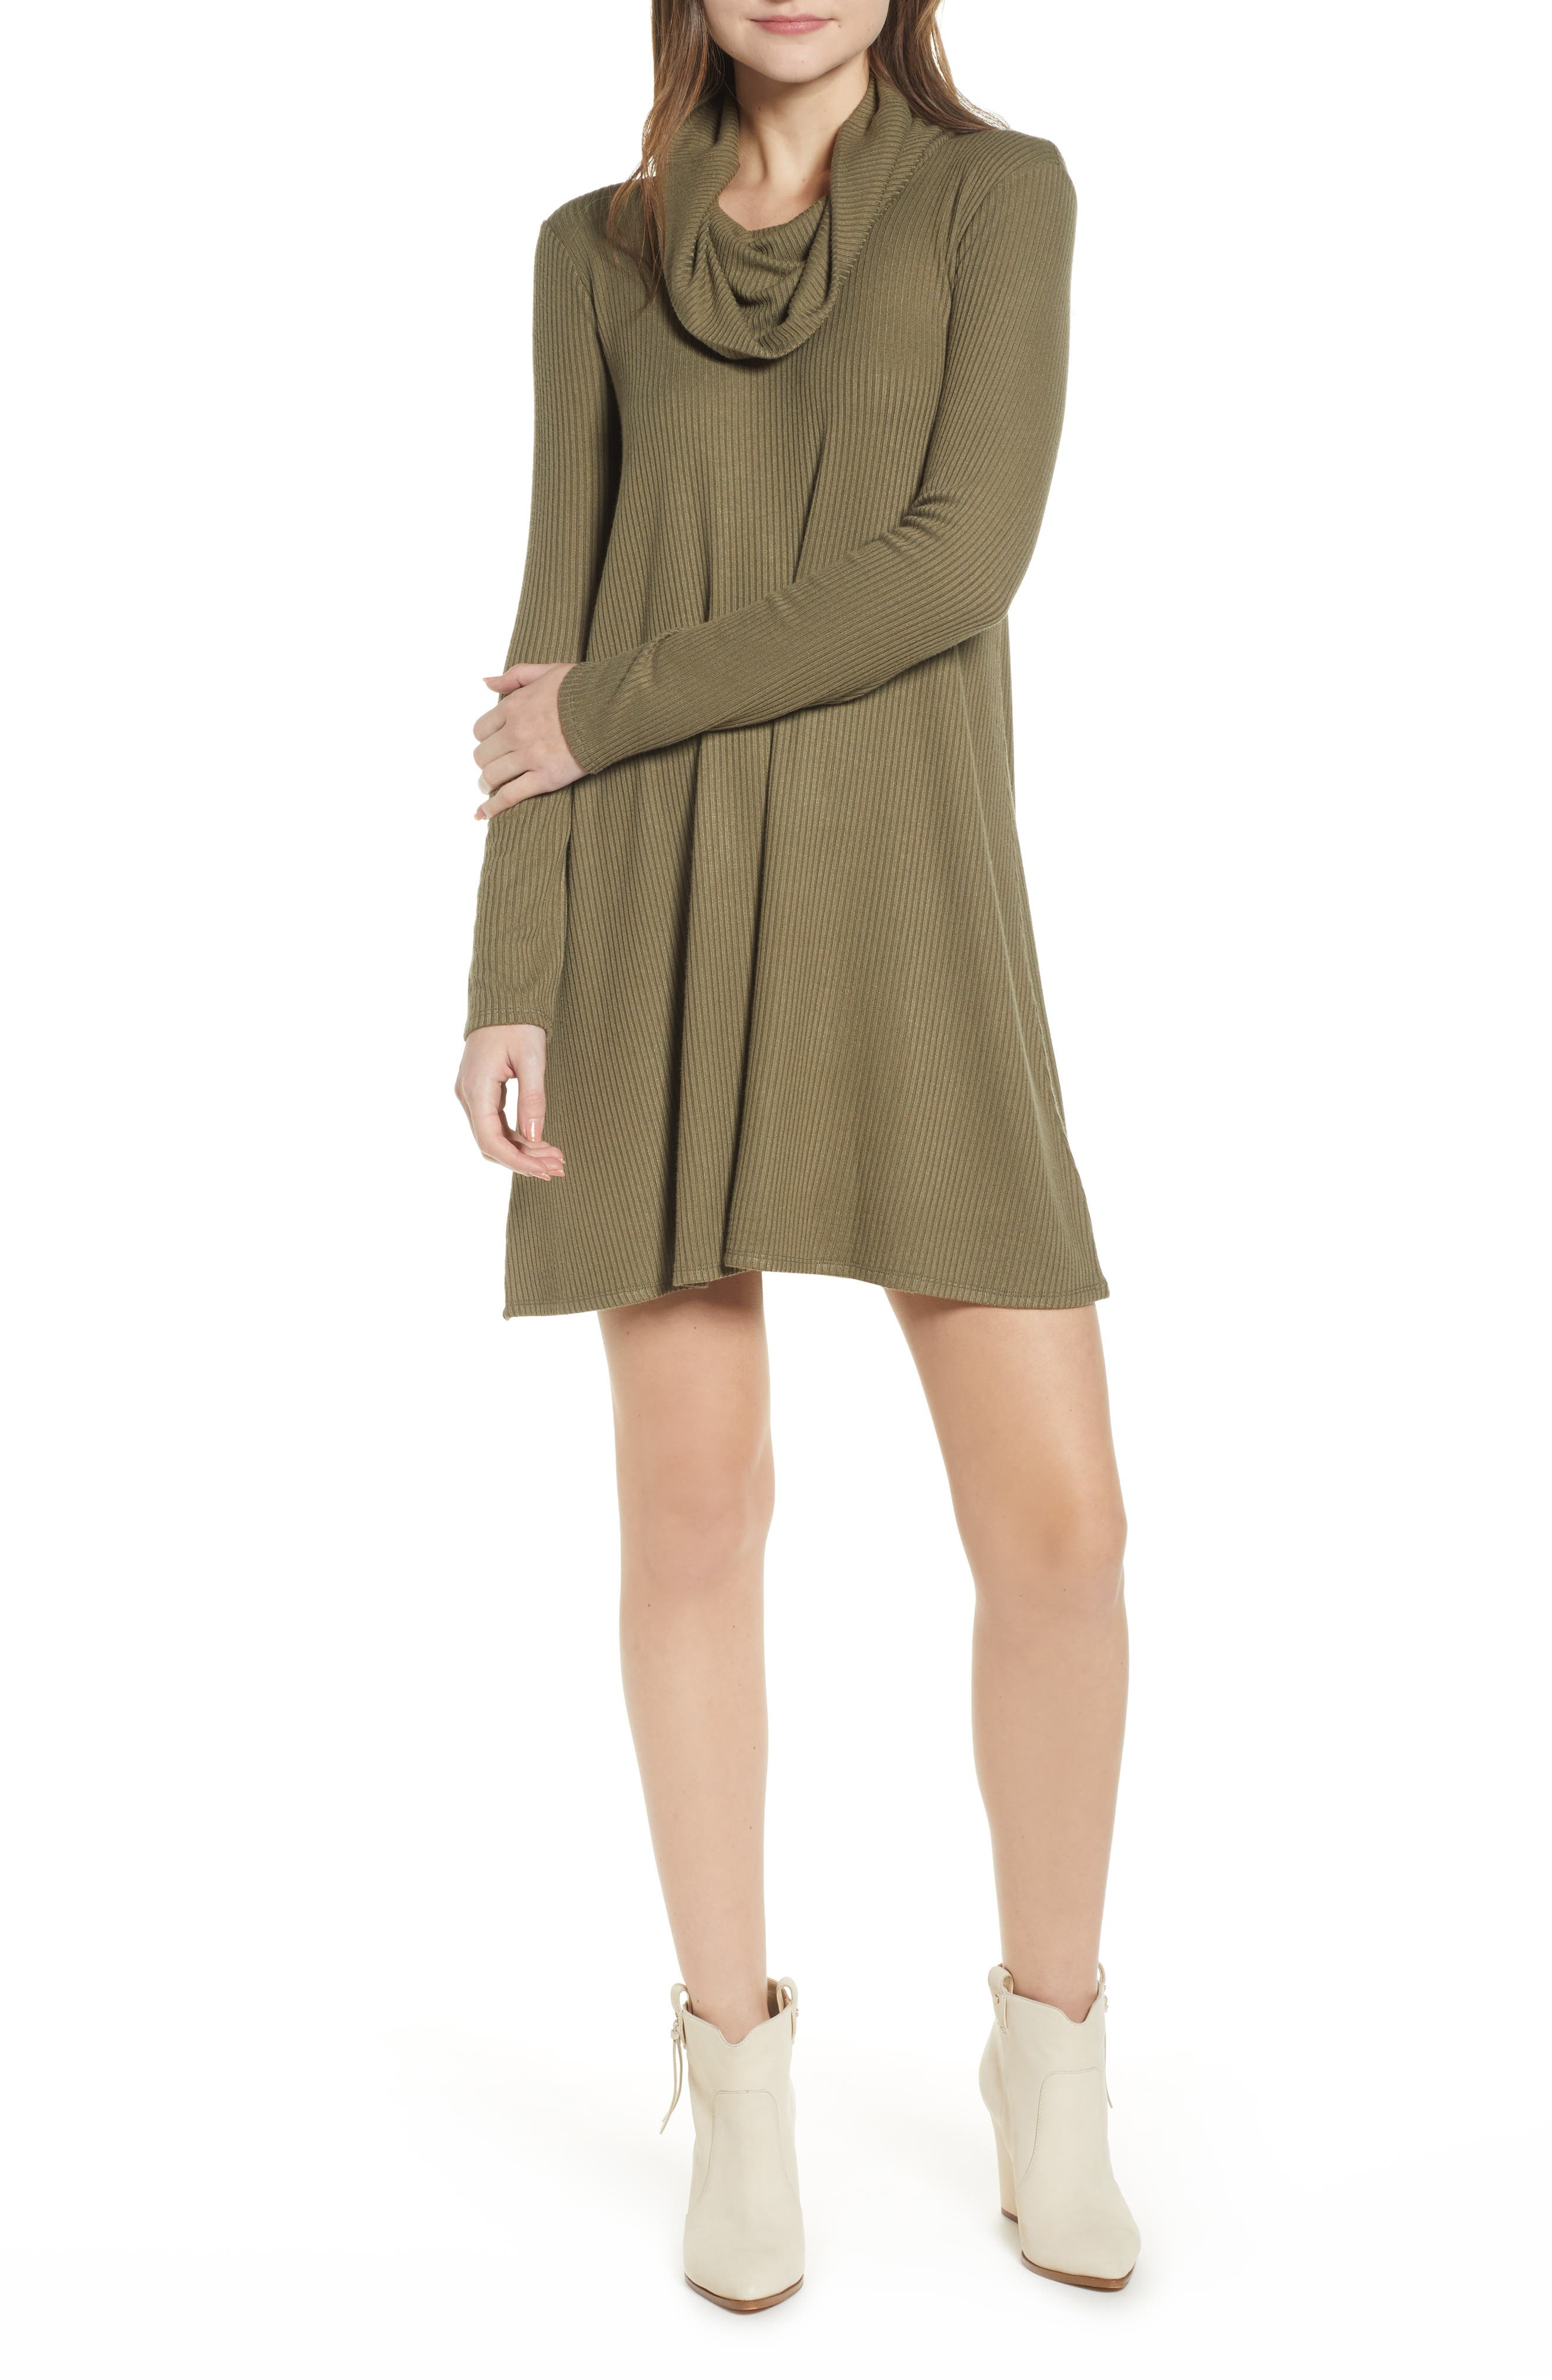 Socialite Maddie Cowl Neck Swing Dress, Green